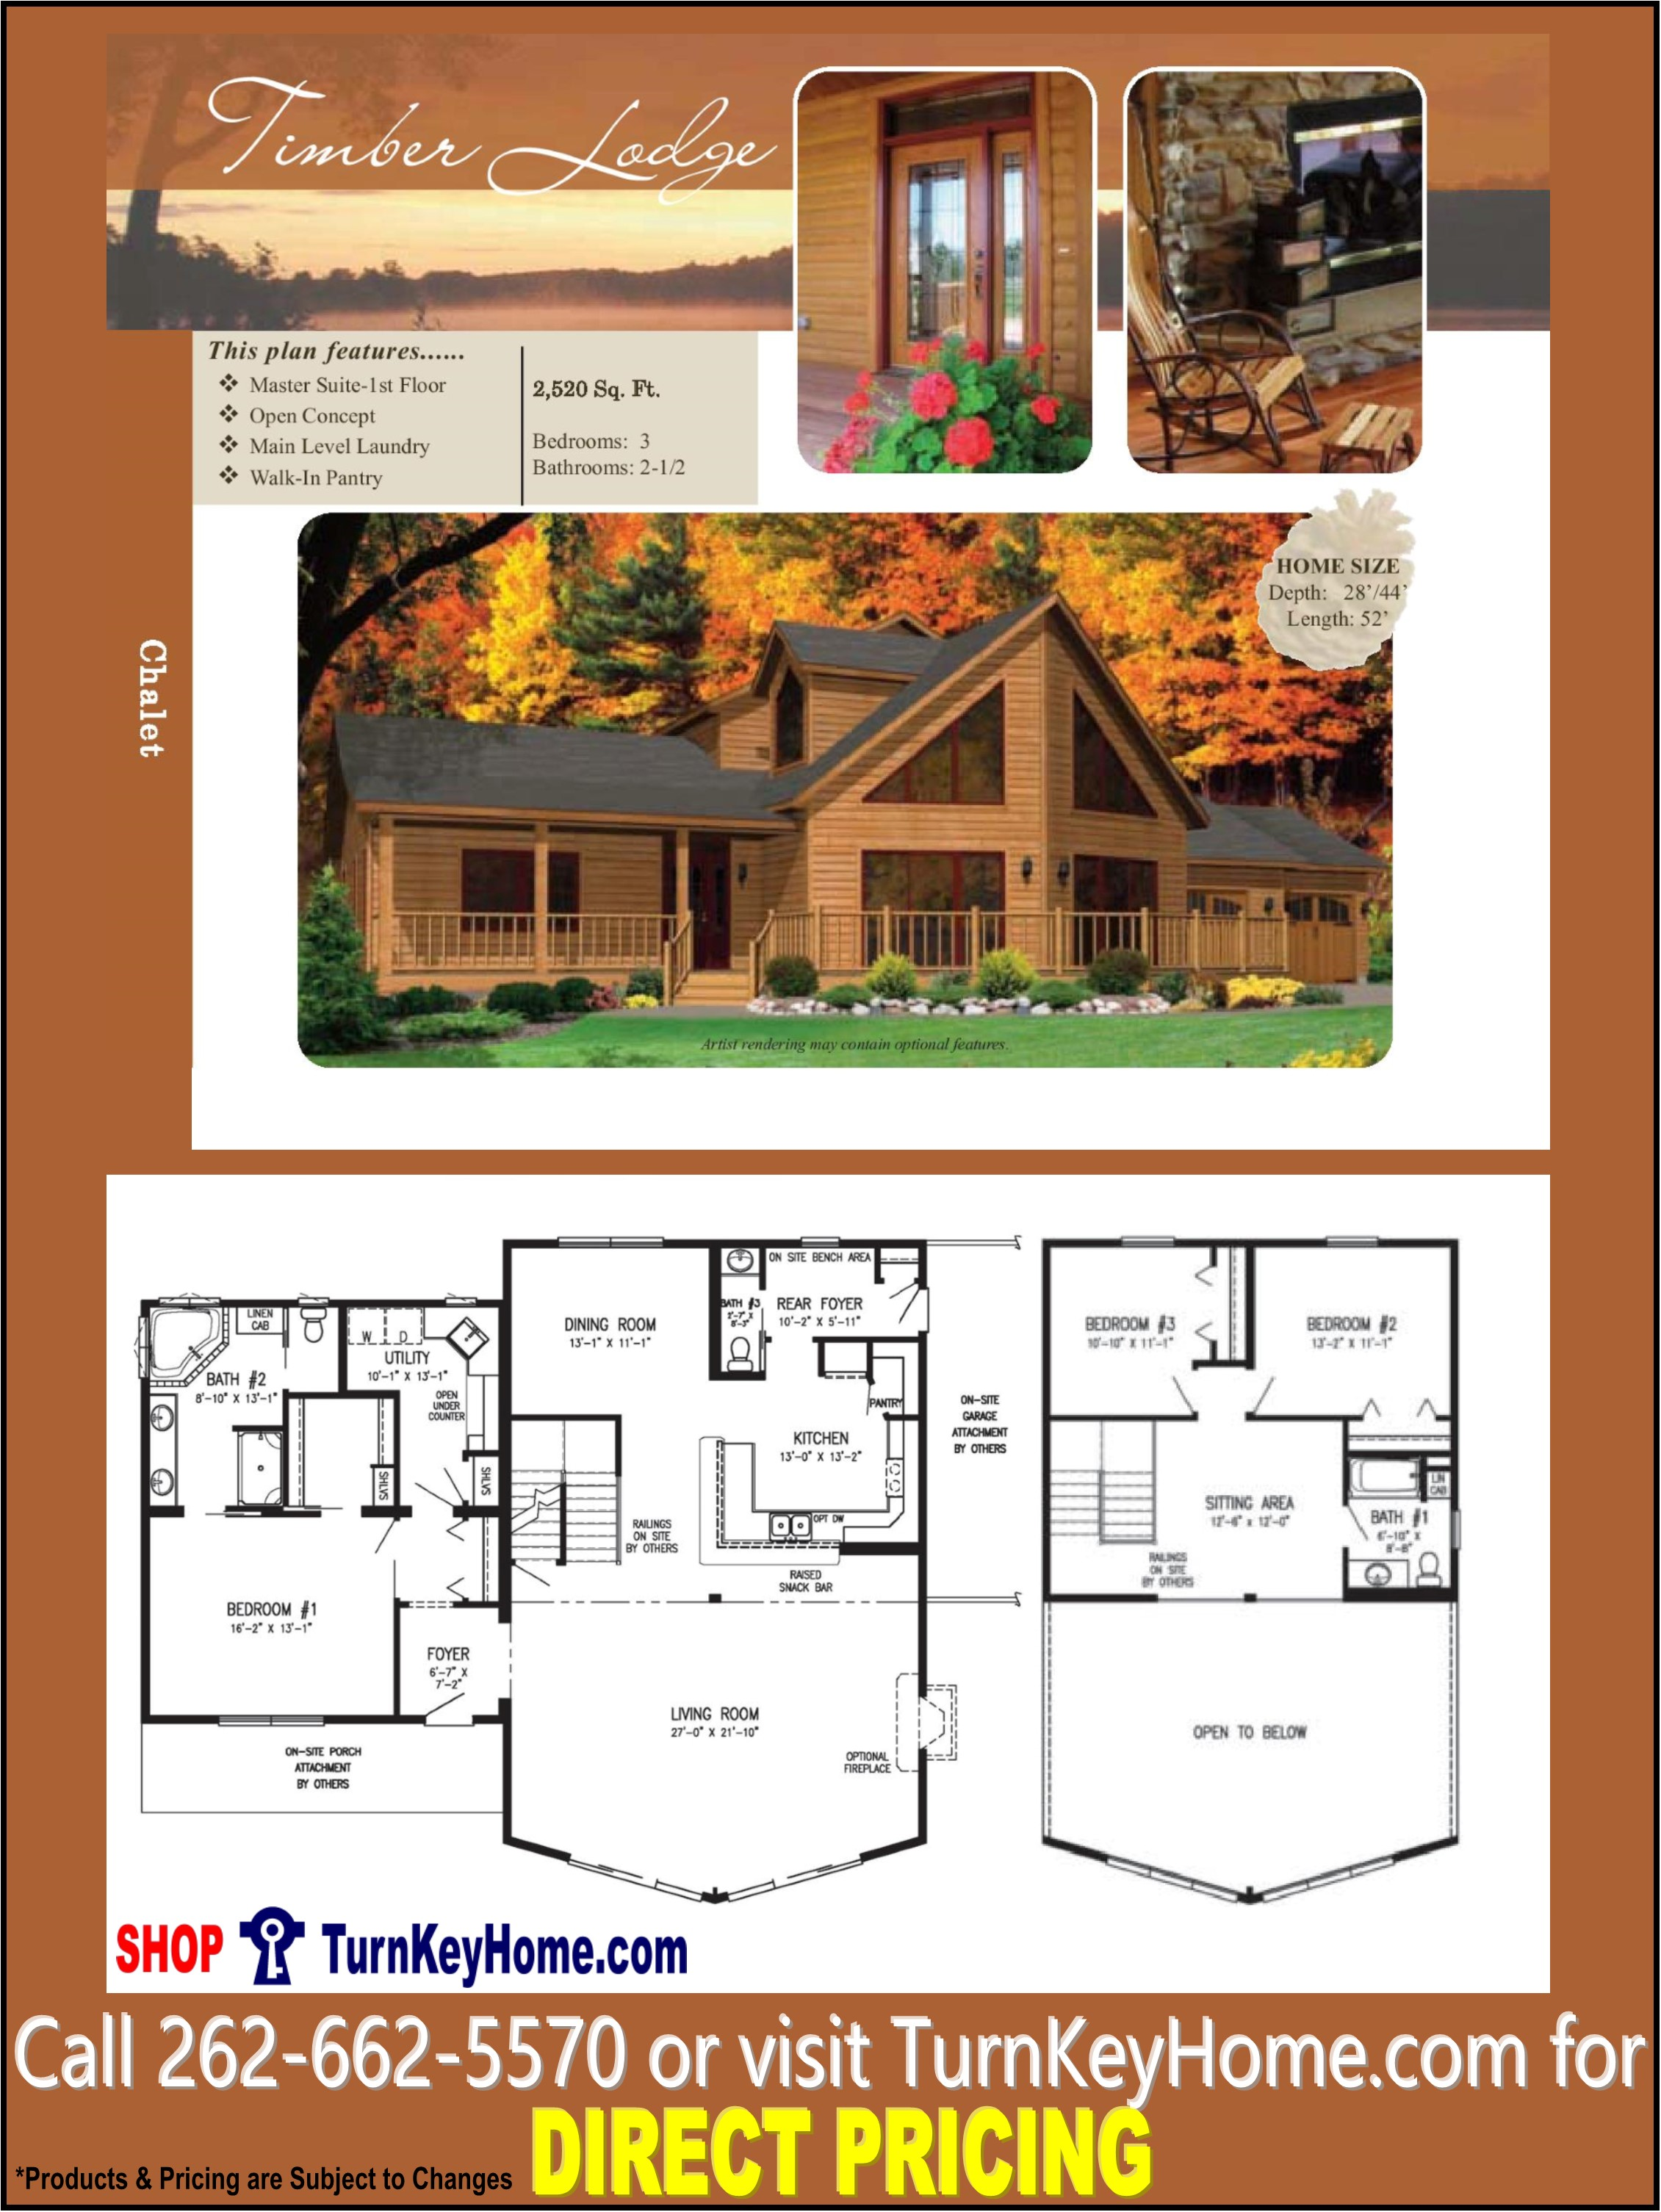 TIMBER LODGE Chalet Home 3 Bed 2 5 Bath Plan 2520 SF Priced From